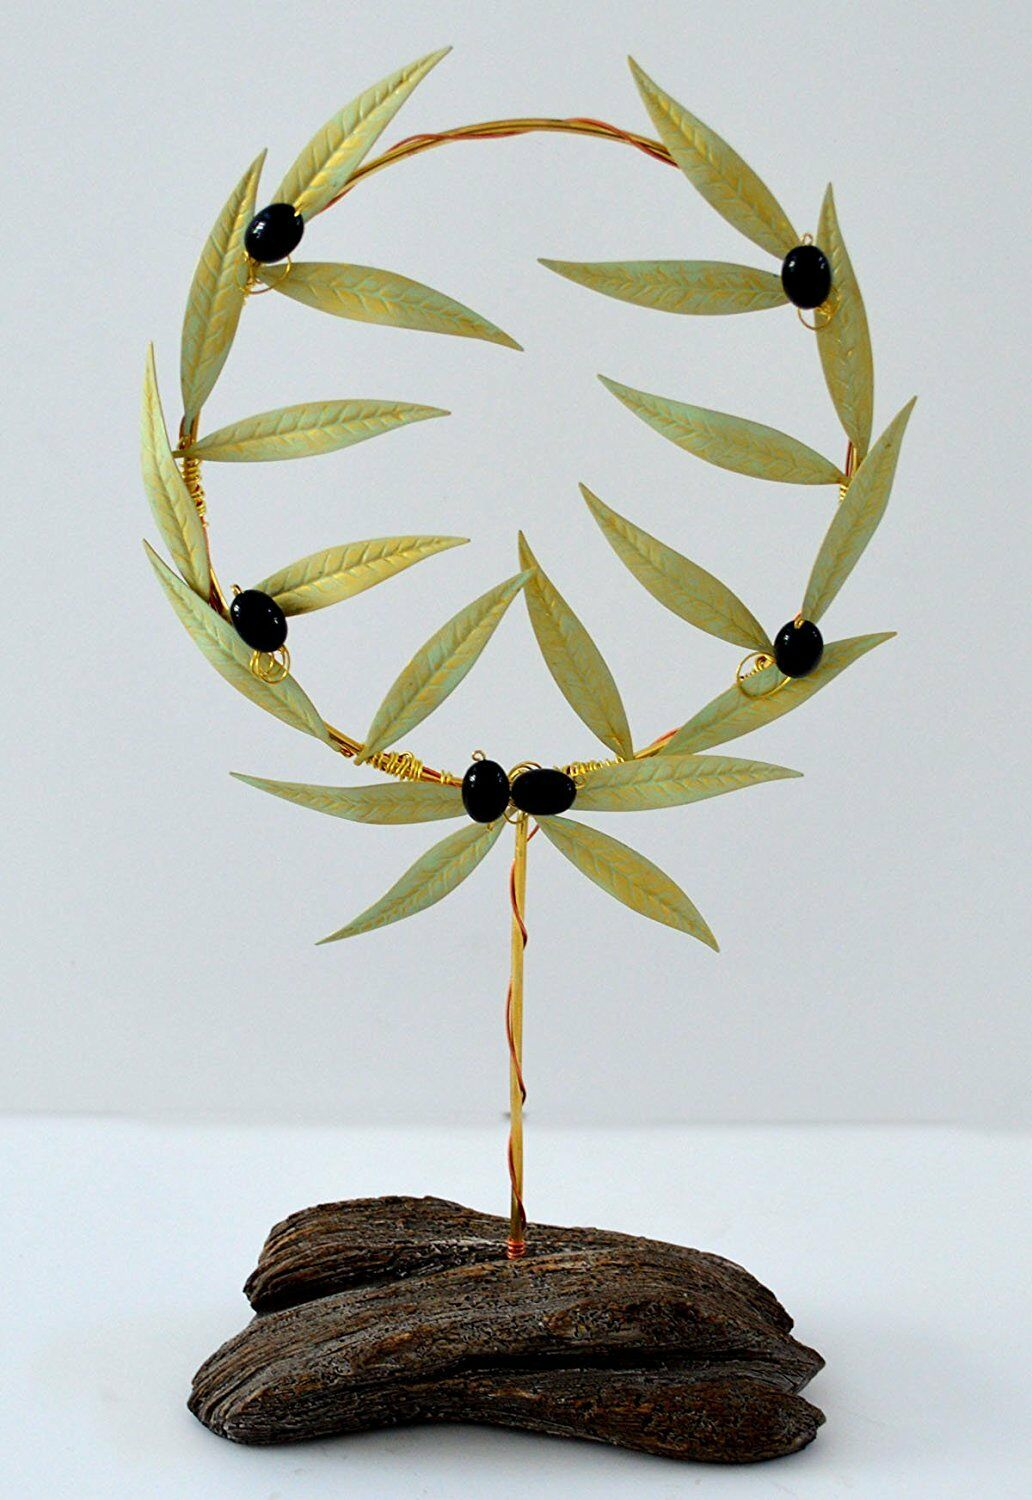 Olive bronze Wreath with light Weiß effect - Olympic Games Prize - Olympia